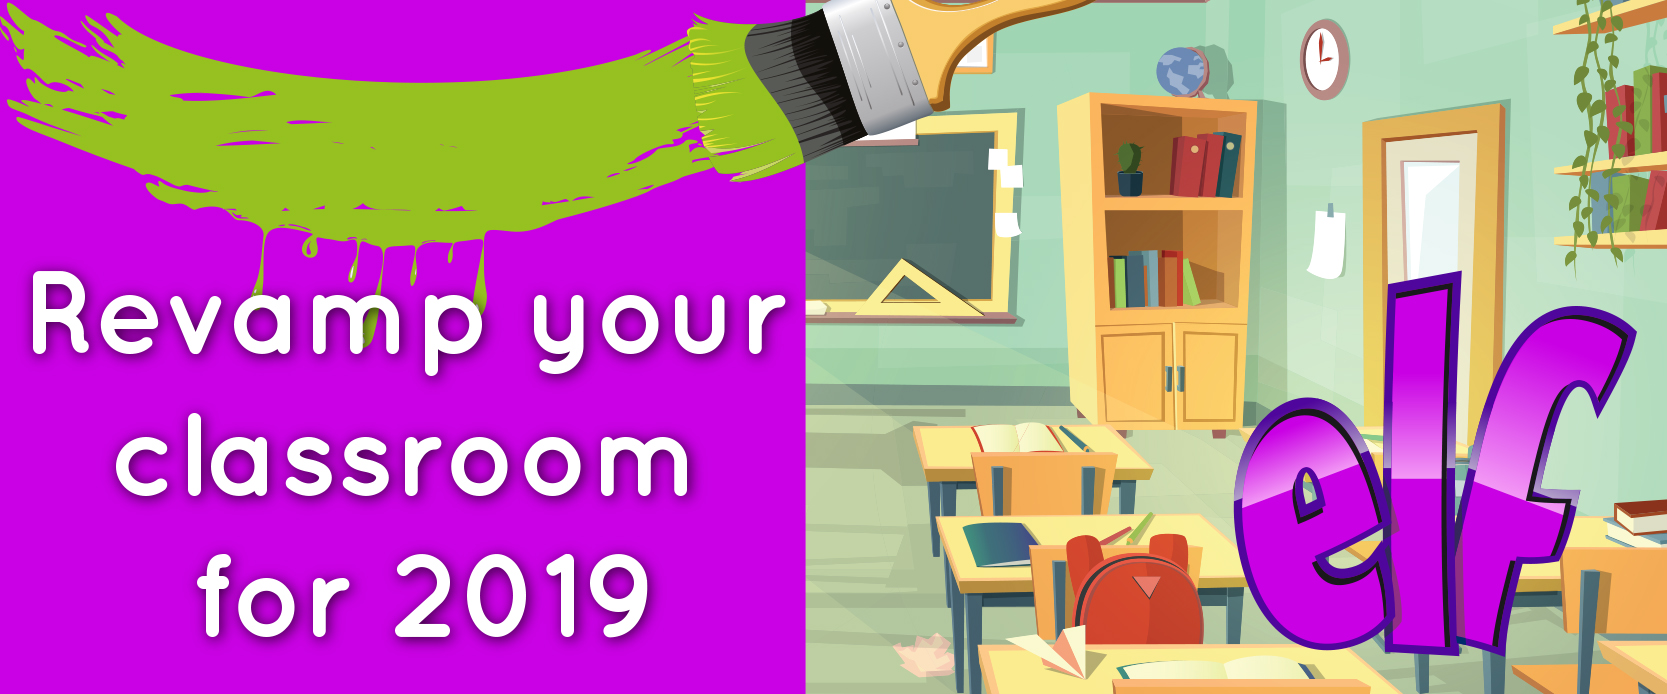 Revamp your Classroom for 2019